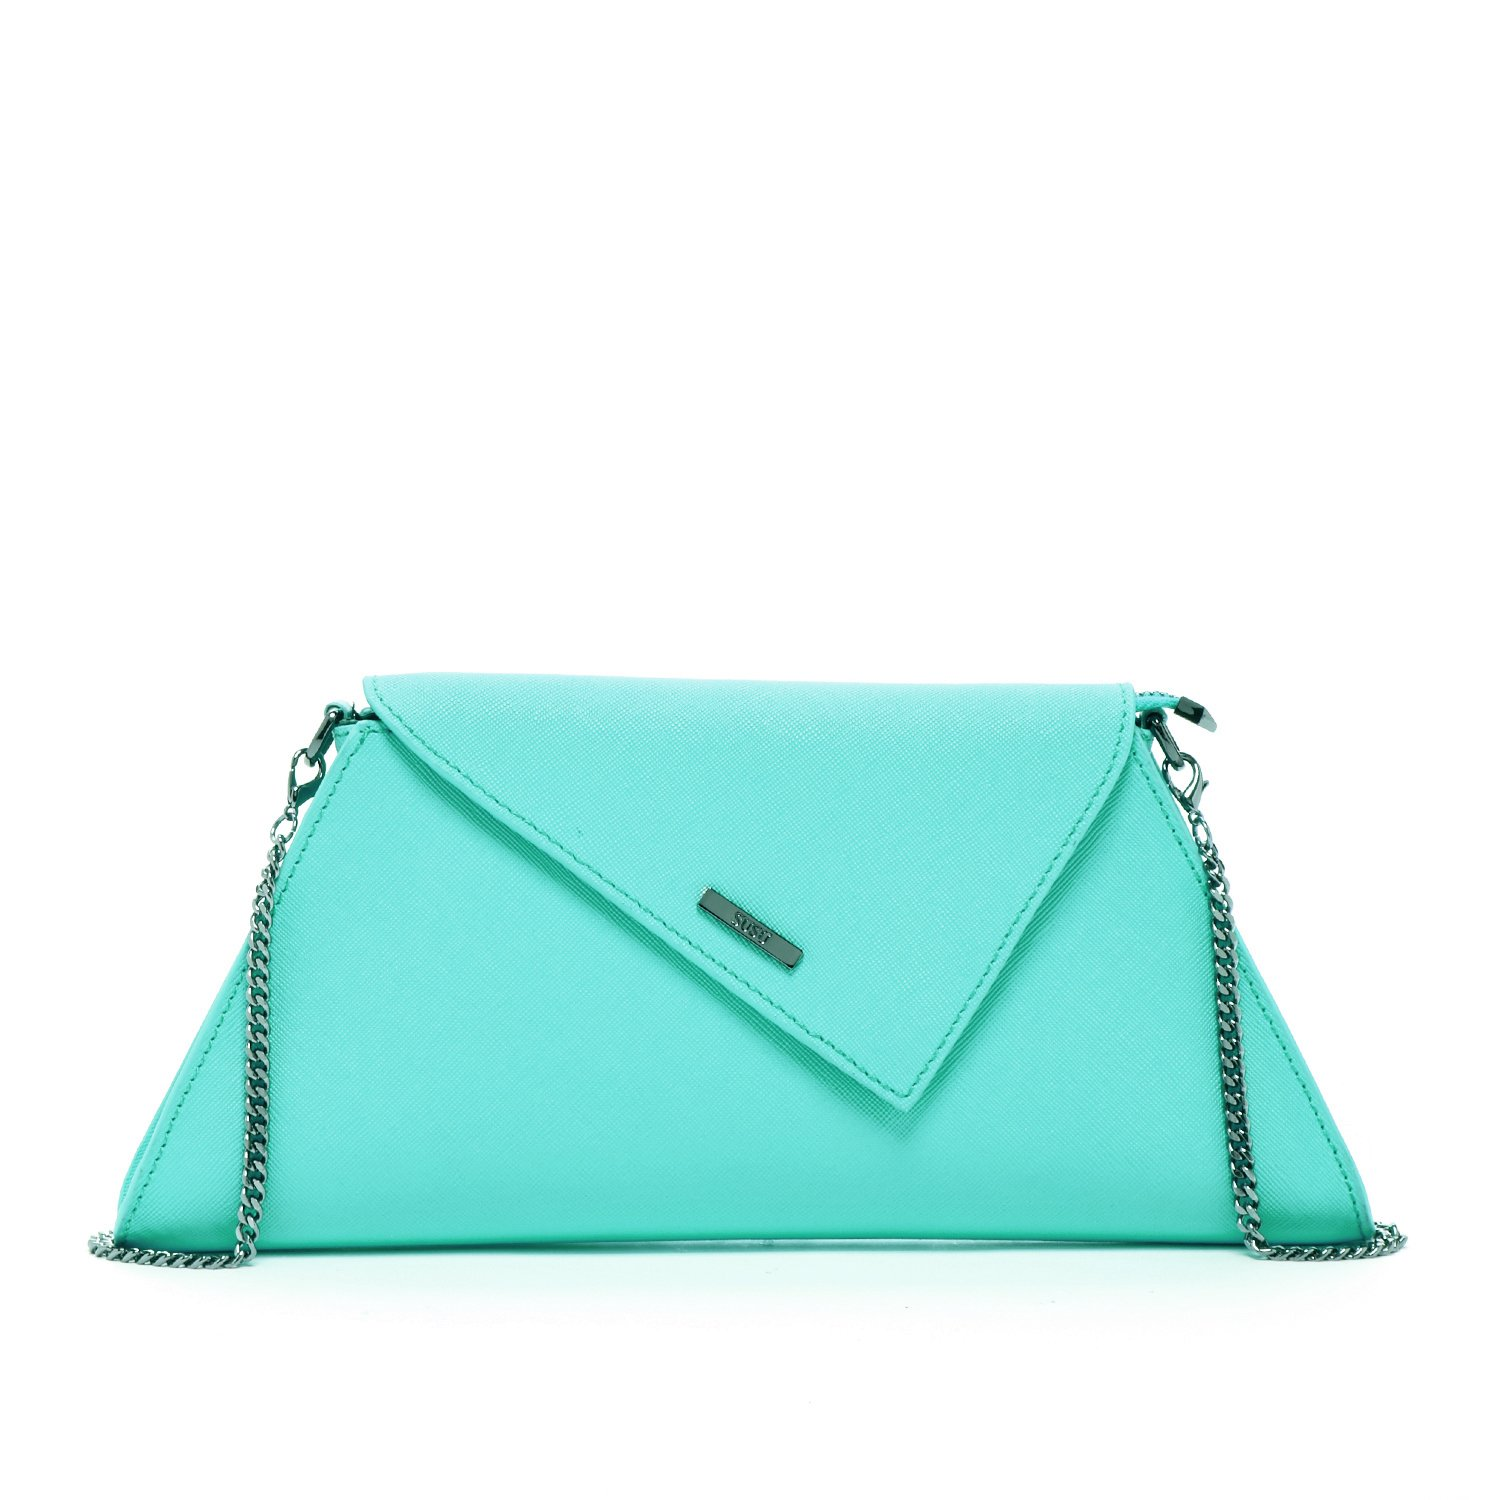 Clutch Purse Summer Clutches for Women Envelope Handbags Turquoise Dressy Leather Evening Bag Prom Party Purses with Chain Strap Mint Green Wedding Crossbody Aqua Fashion Designer Bridal Hand Pouch